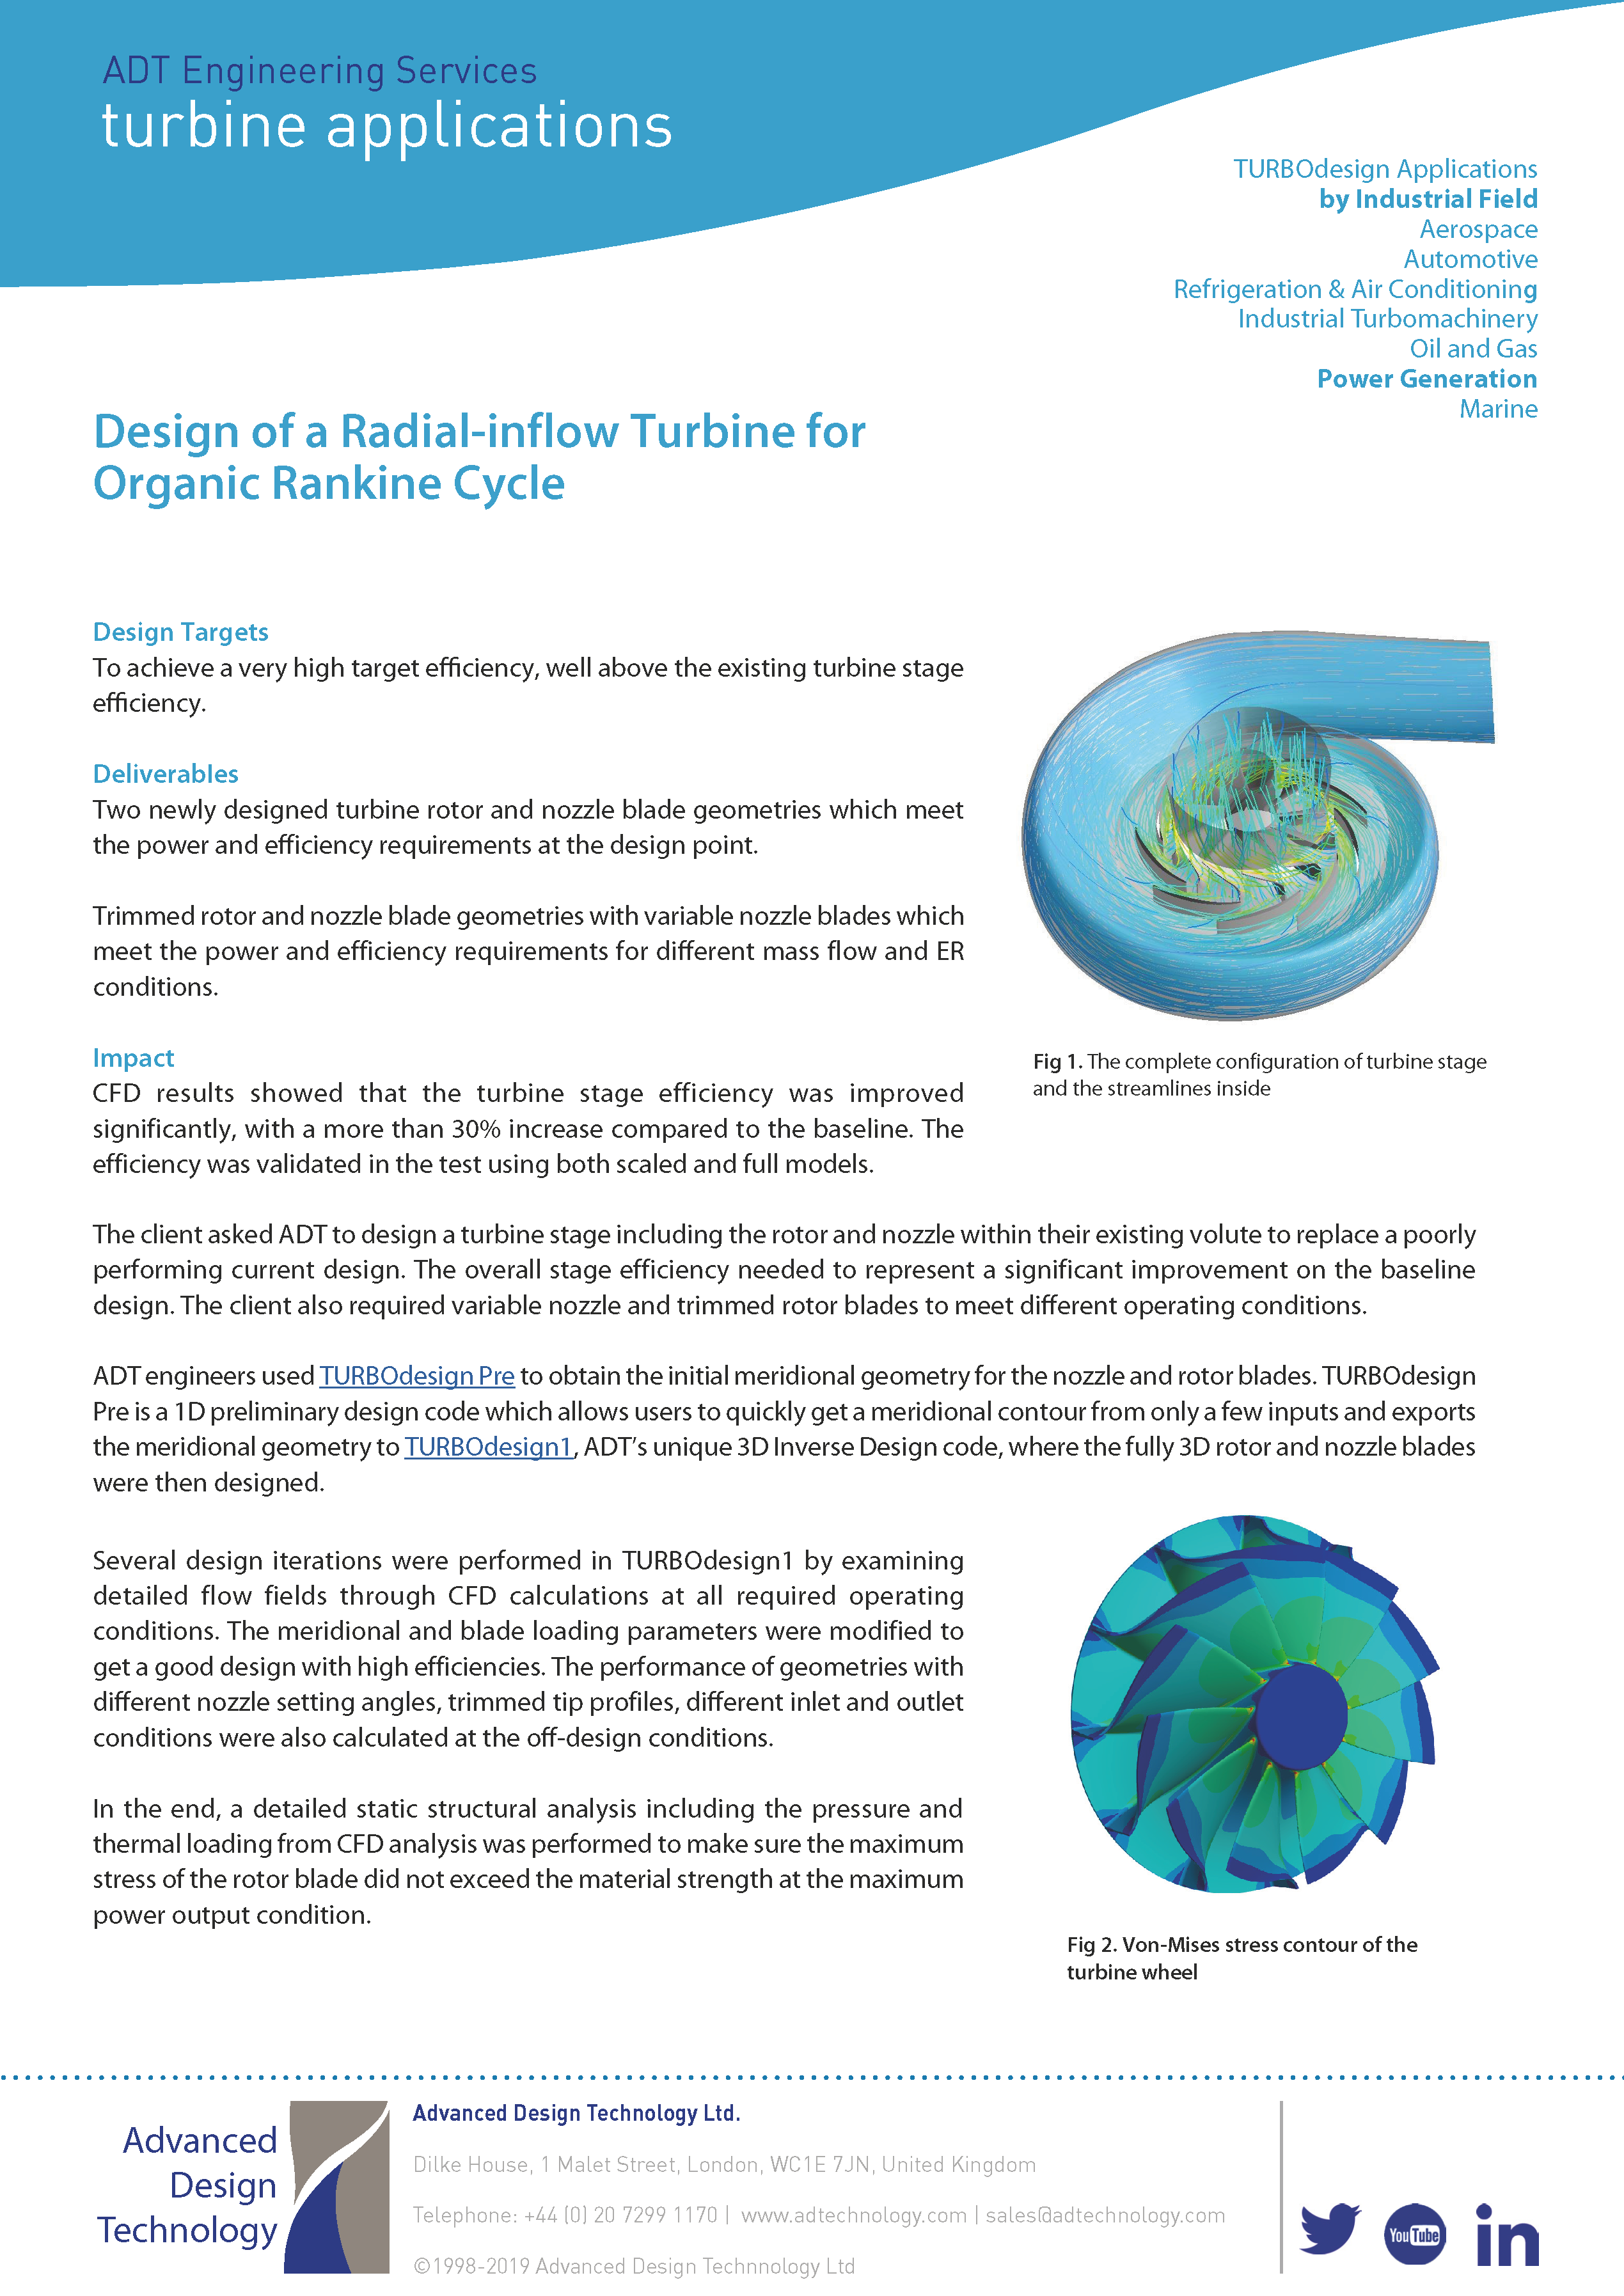 ADT Consultancy Summary - Design of a Radial Inflow Turbine front page